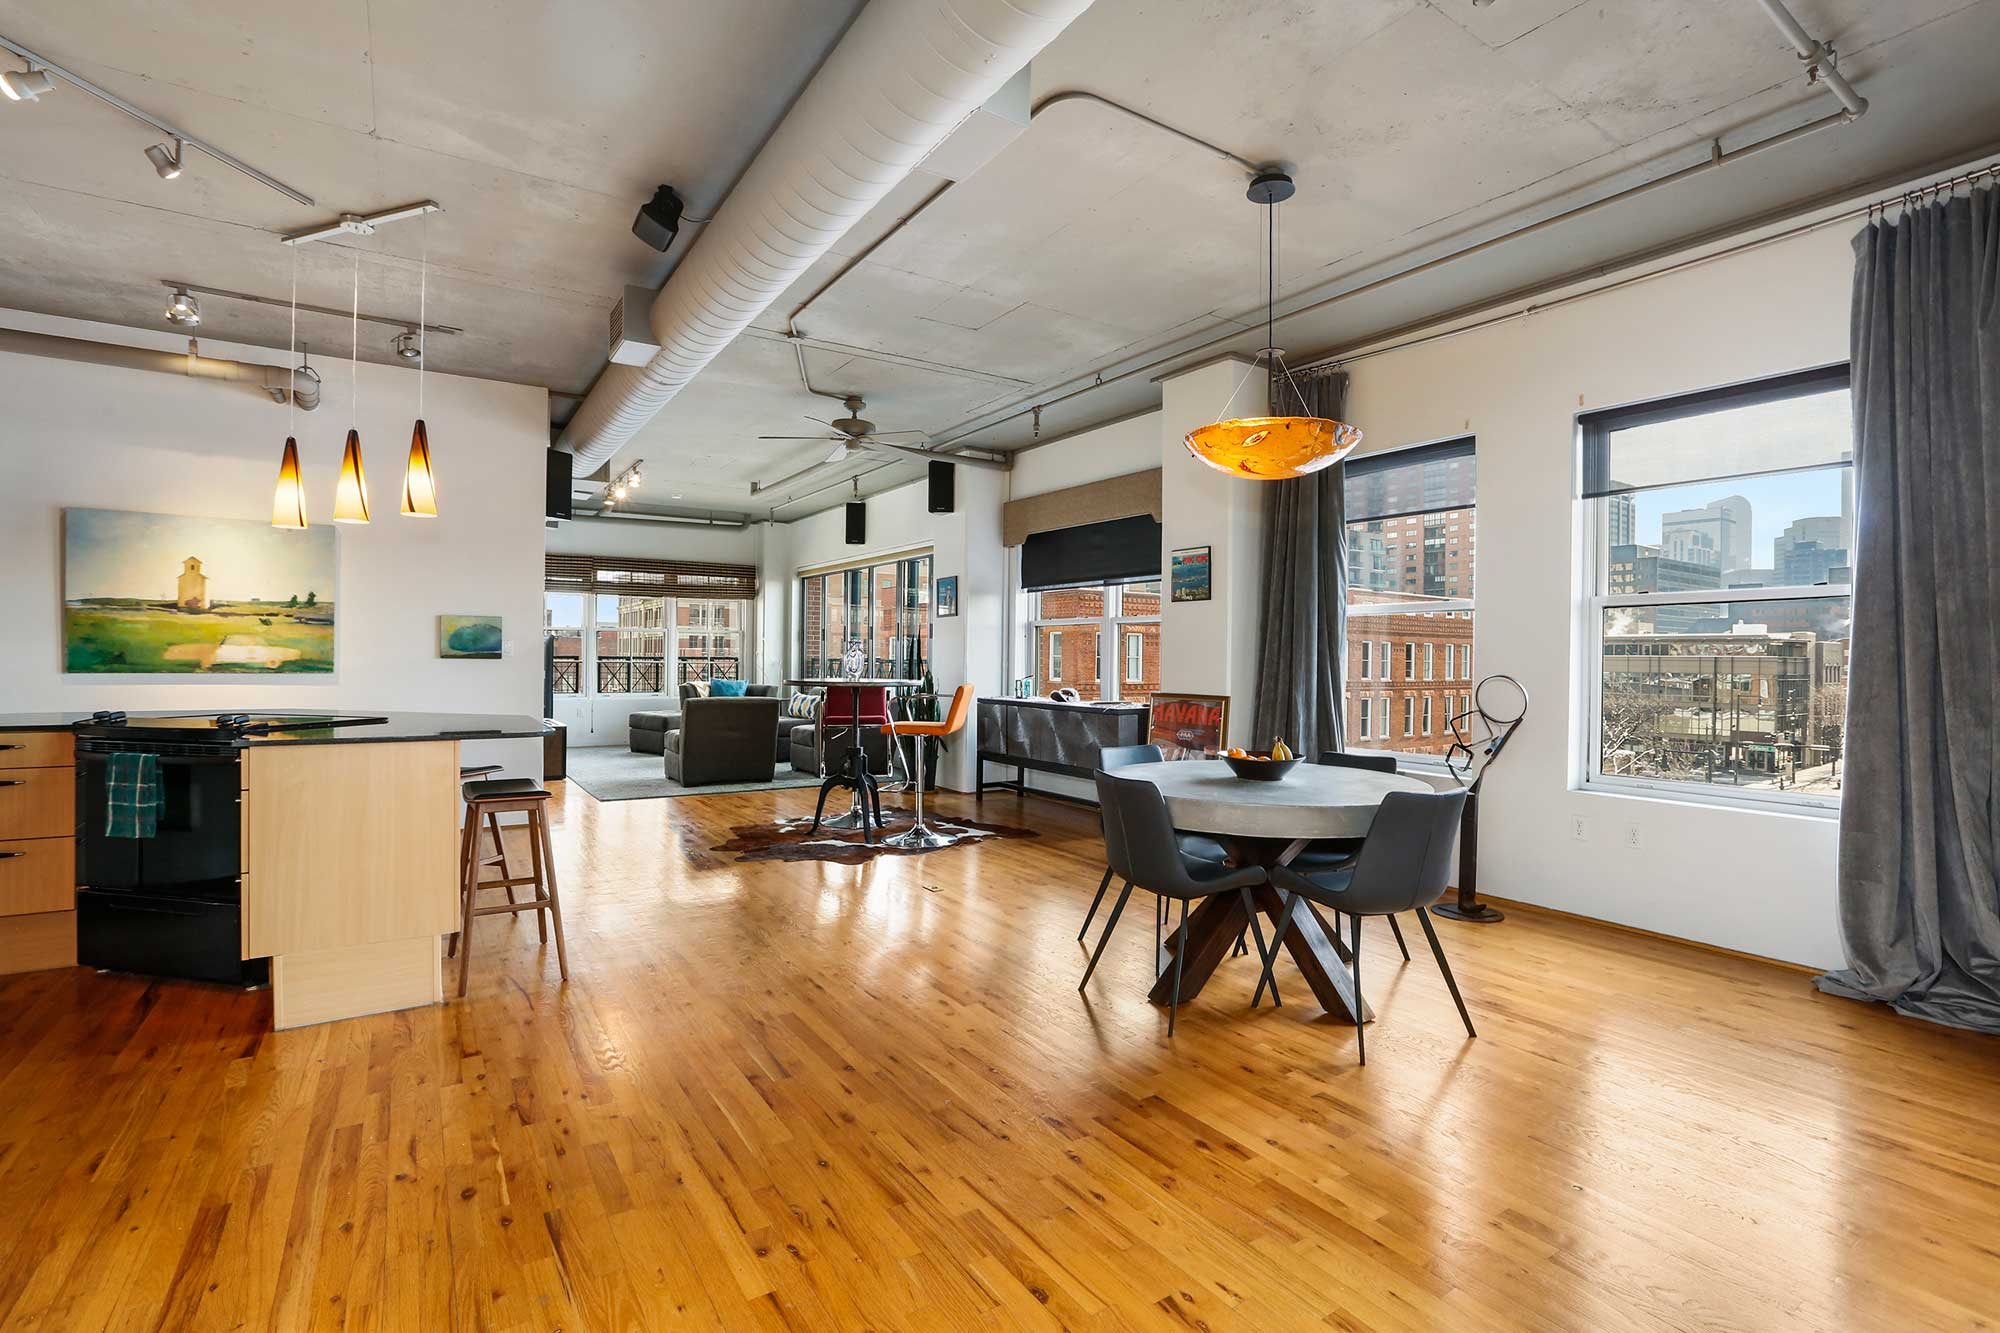 Lofts for rent Denver LoDo at the highly desirable Palace Lofts